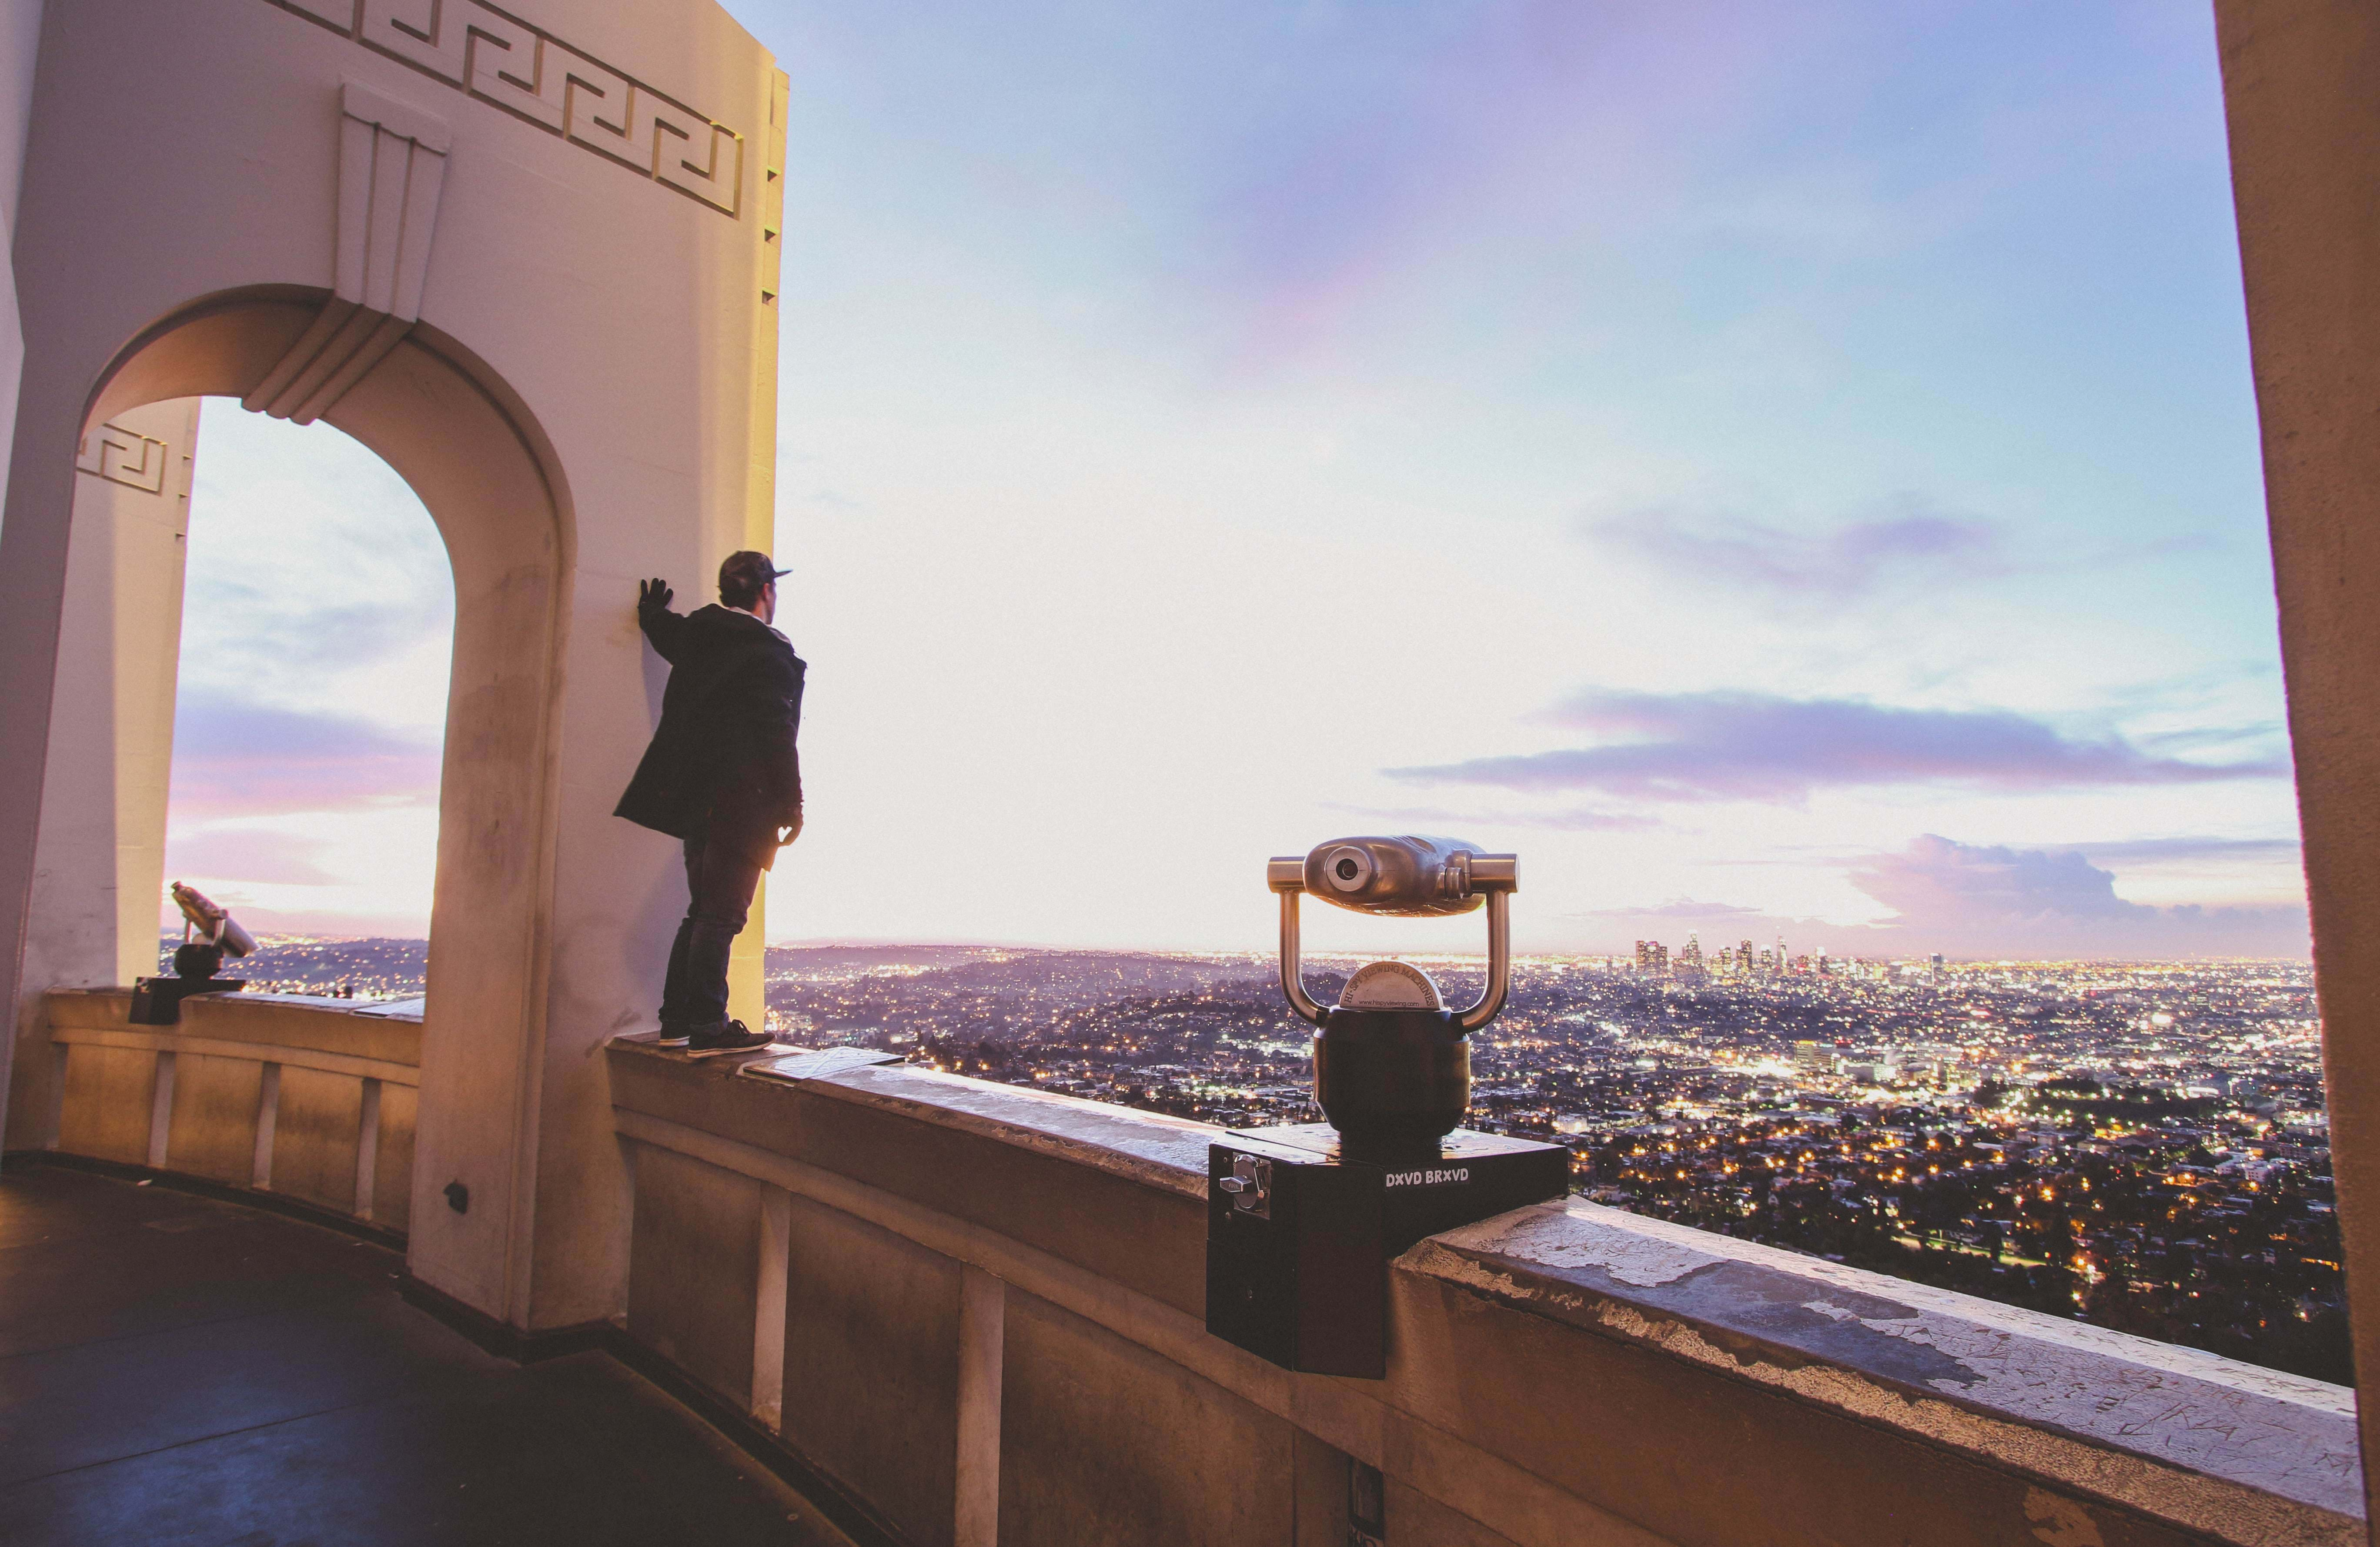 A student in Los Angeles overlooking the LA skyline